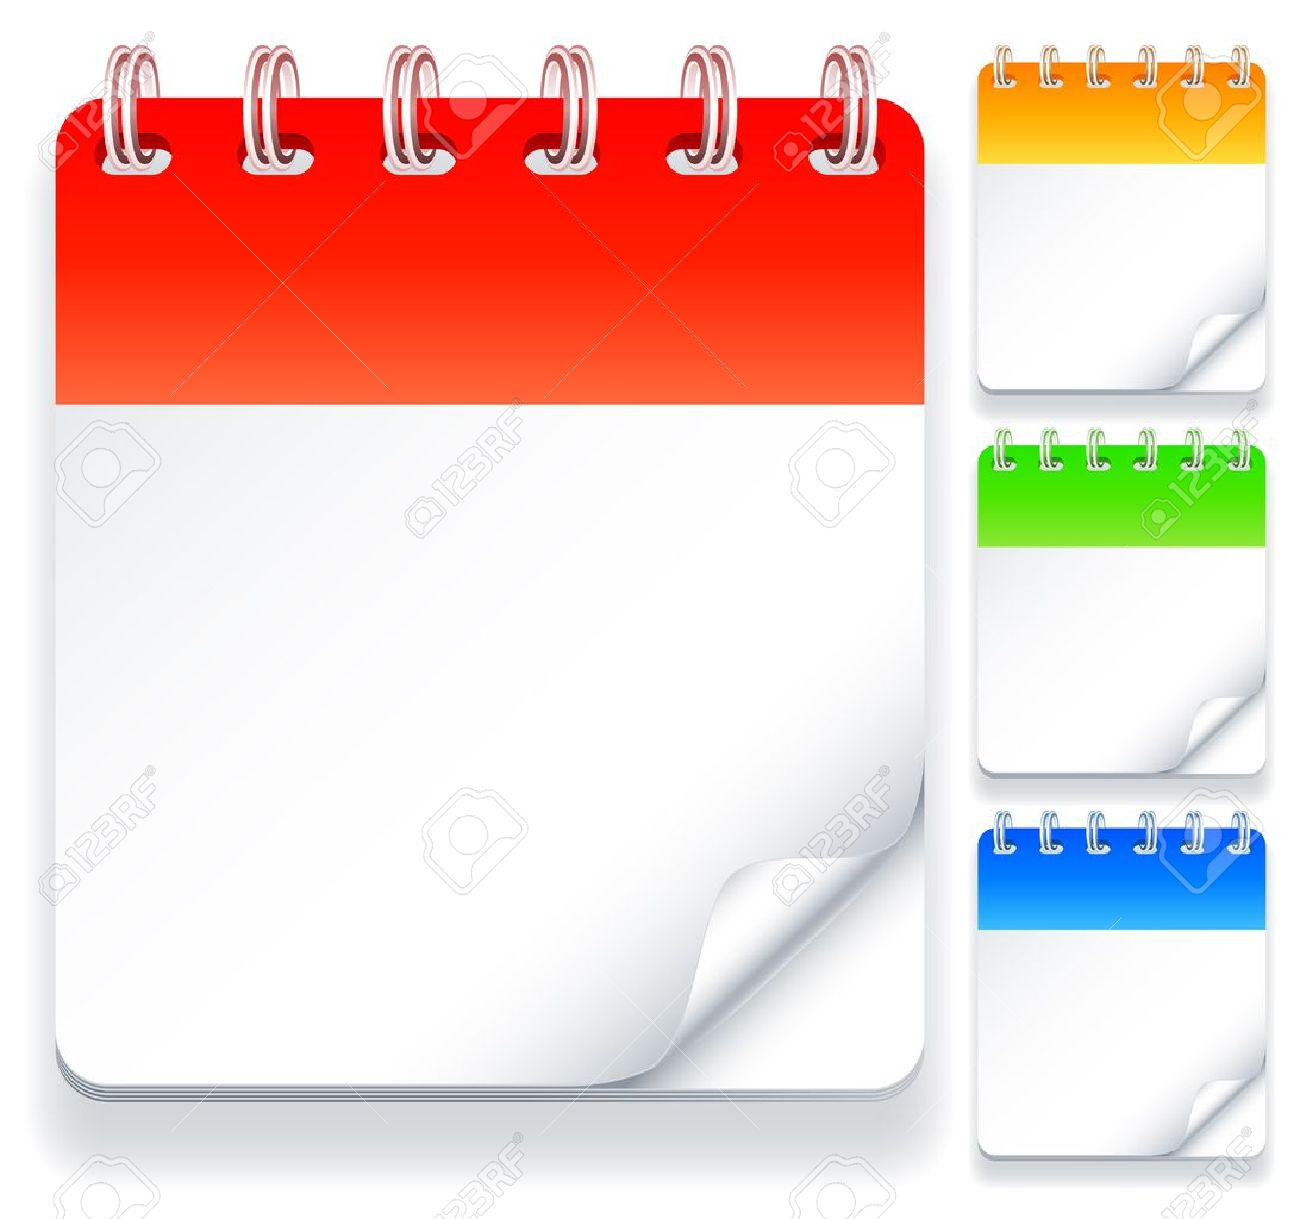 Blank pages to color on - Color Calendars With Blank Pages Stock Vector 13099500